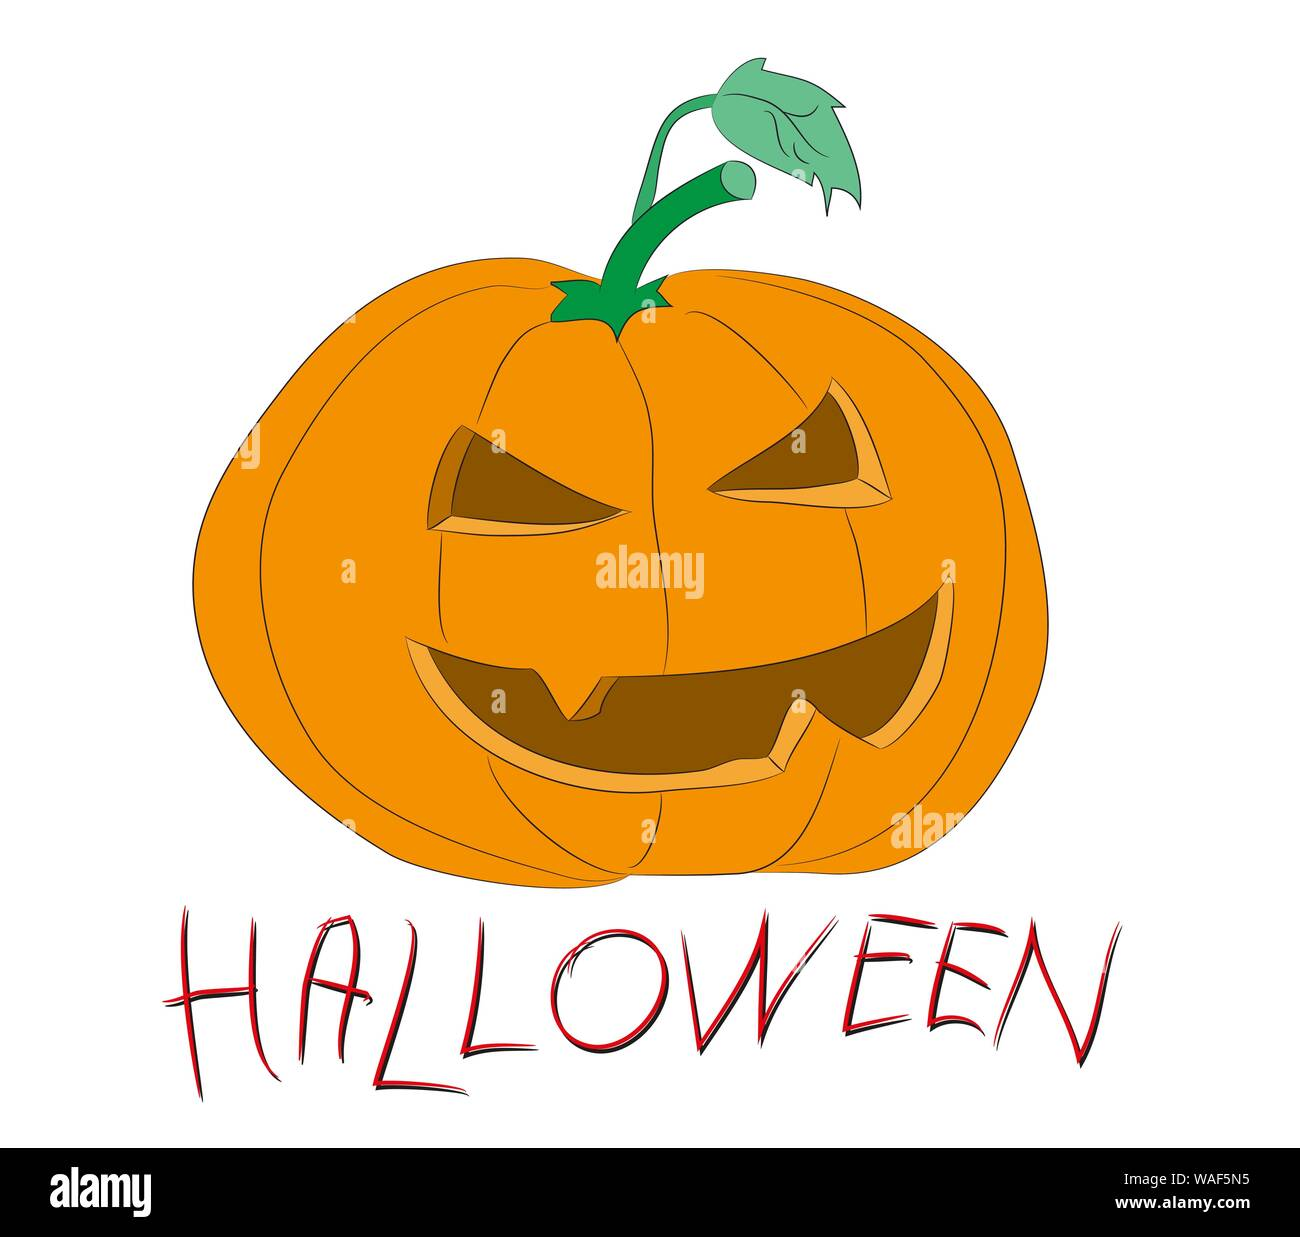 halloween pumpkin drawing color, vector, white background